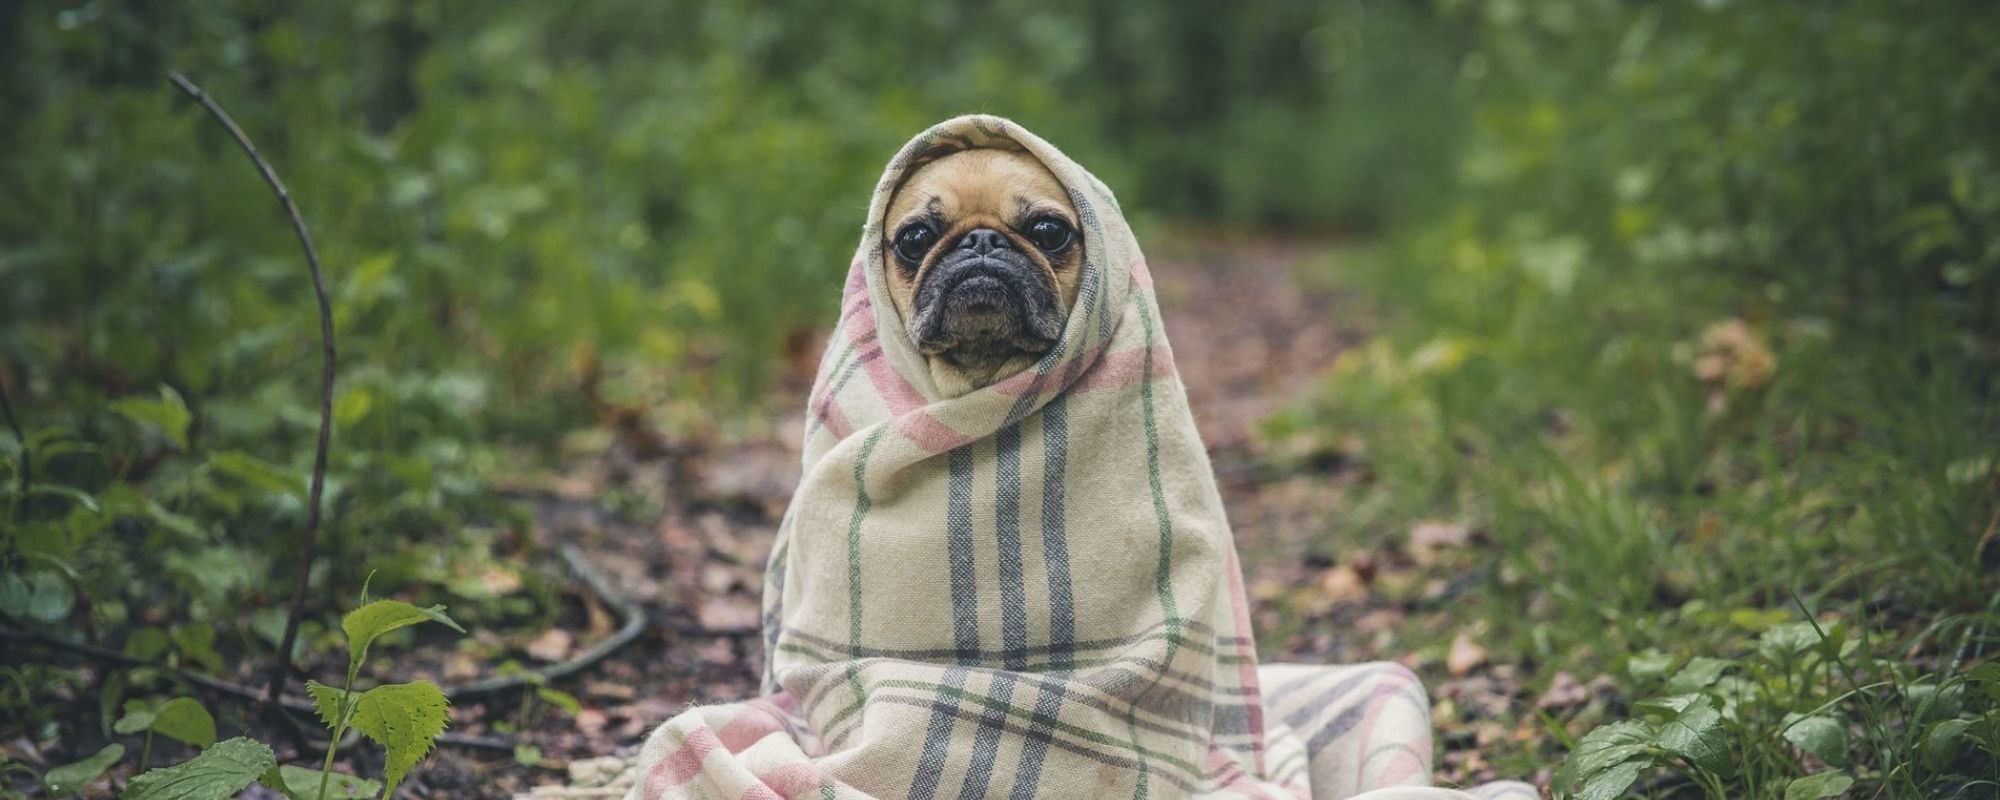 Funny pug links for your perusal & acumen.